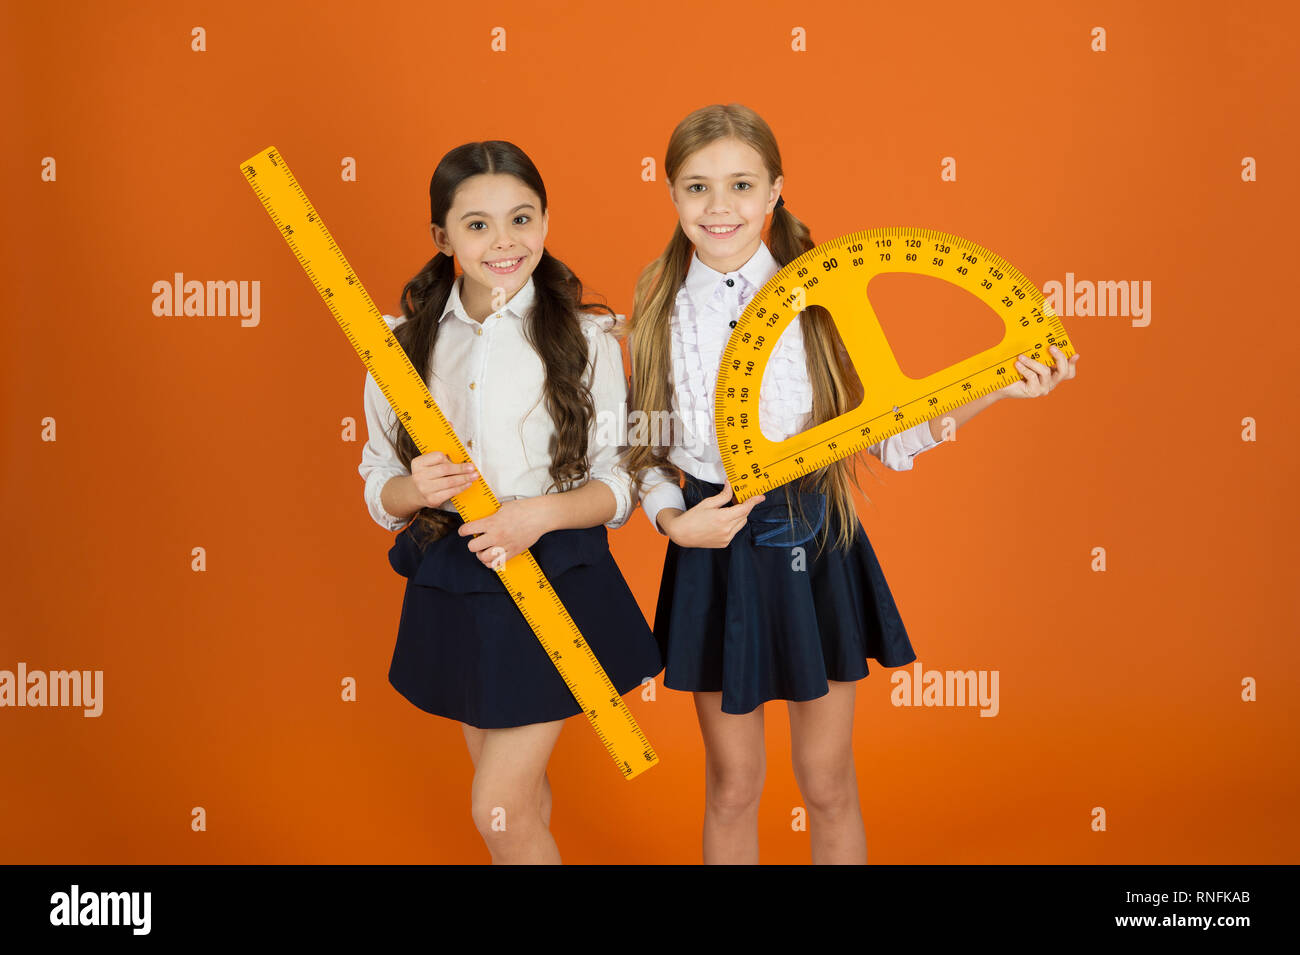 Geometry favorite subject. Education and school concept. School students learning geometry. Kids school uniform on orange background. STEM school disciplines. Pupil cute girls with big rulers. - Stock Image